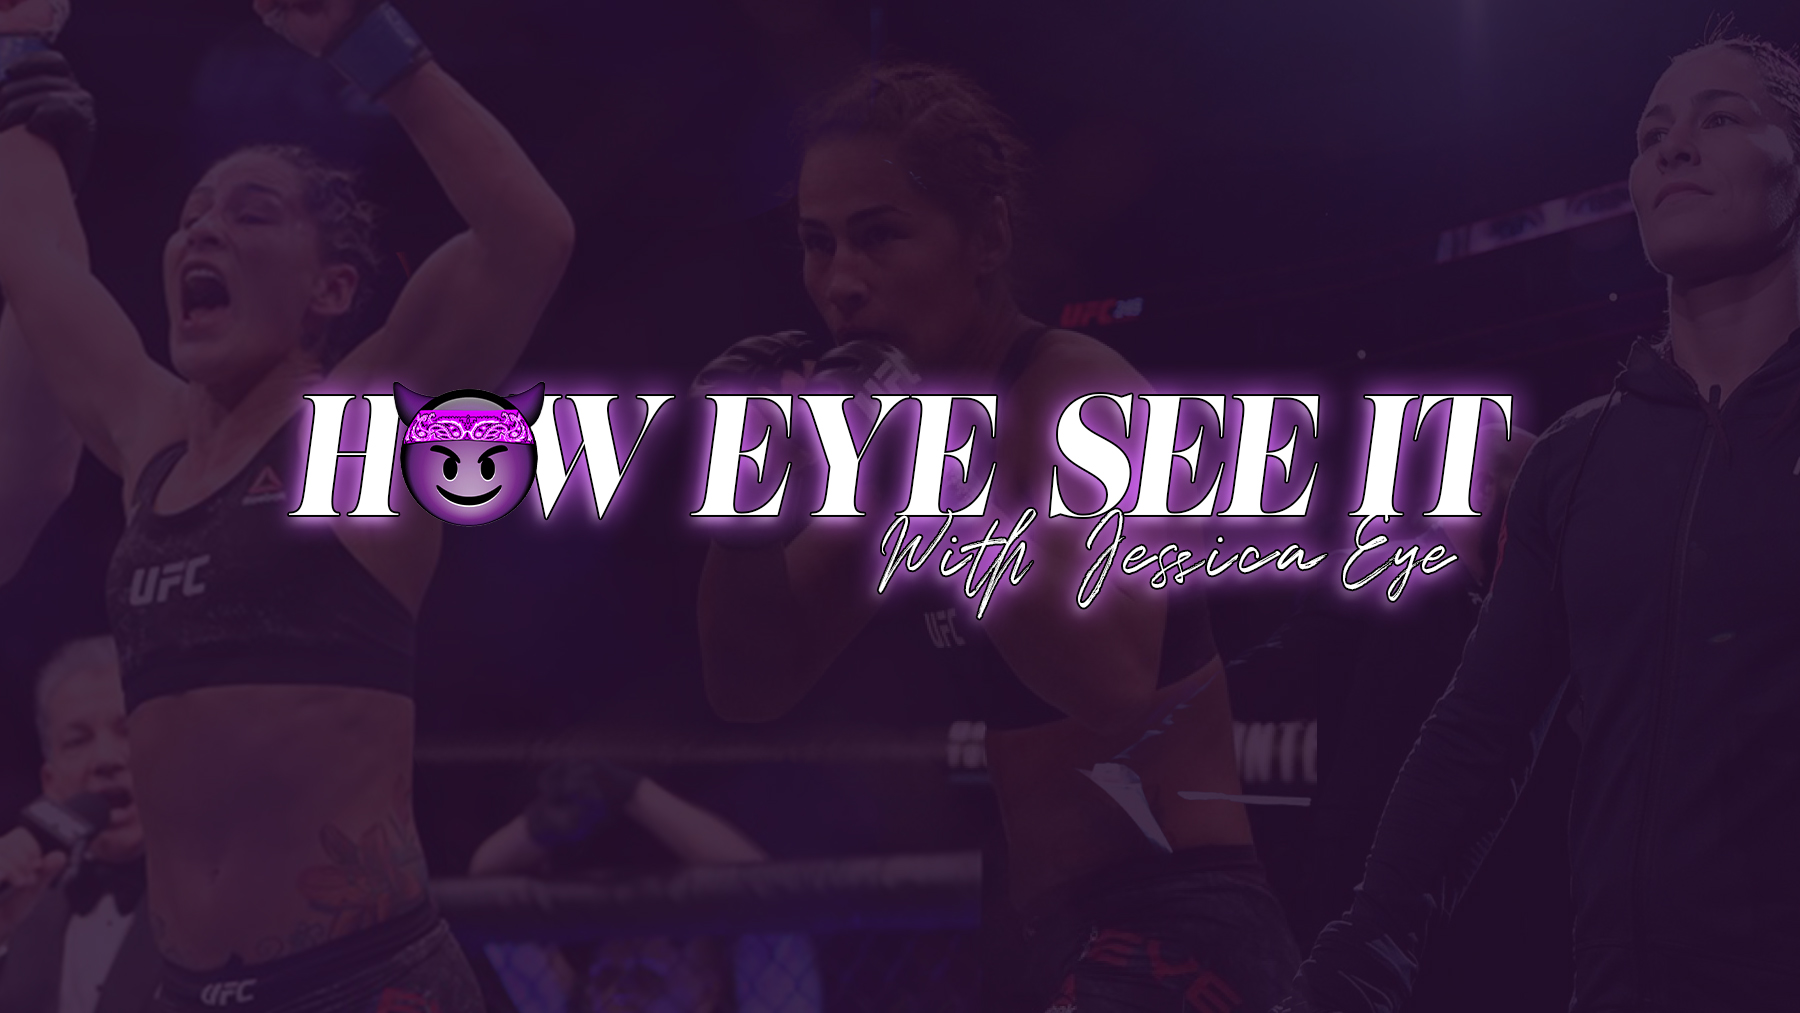 How Eye See It Podcast with Jessica Eye